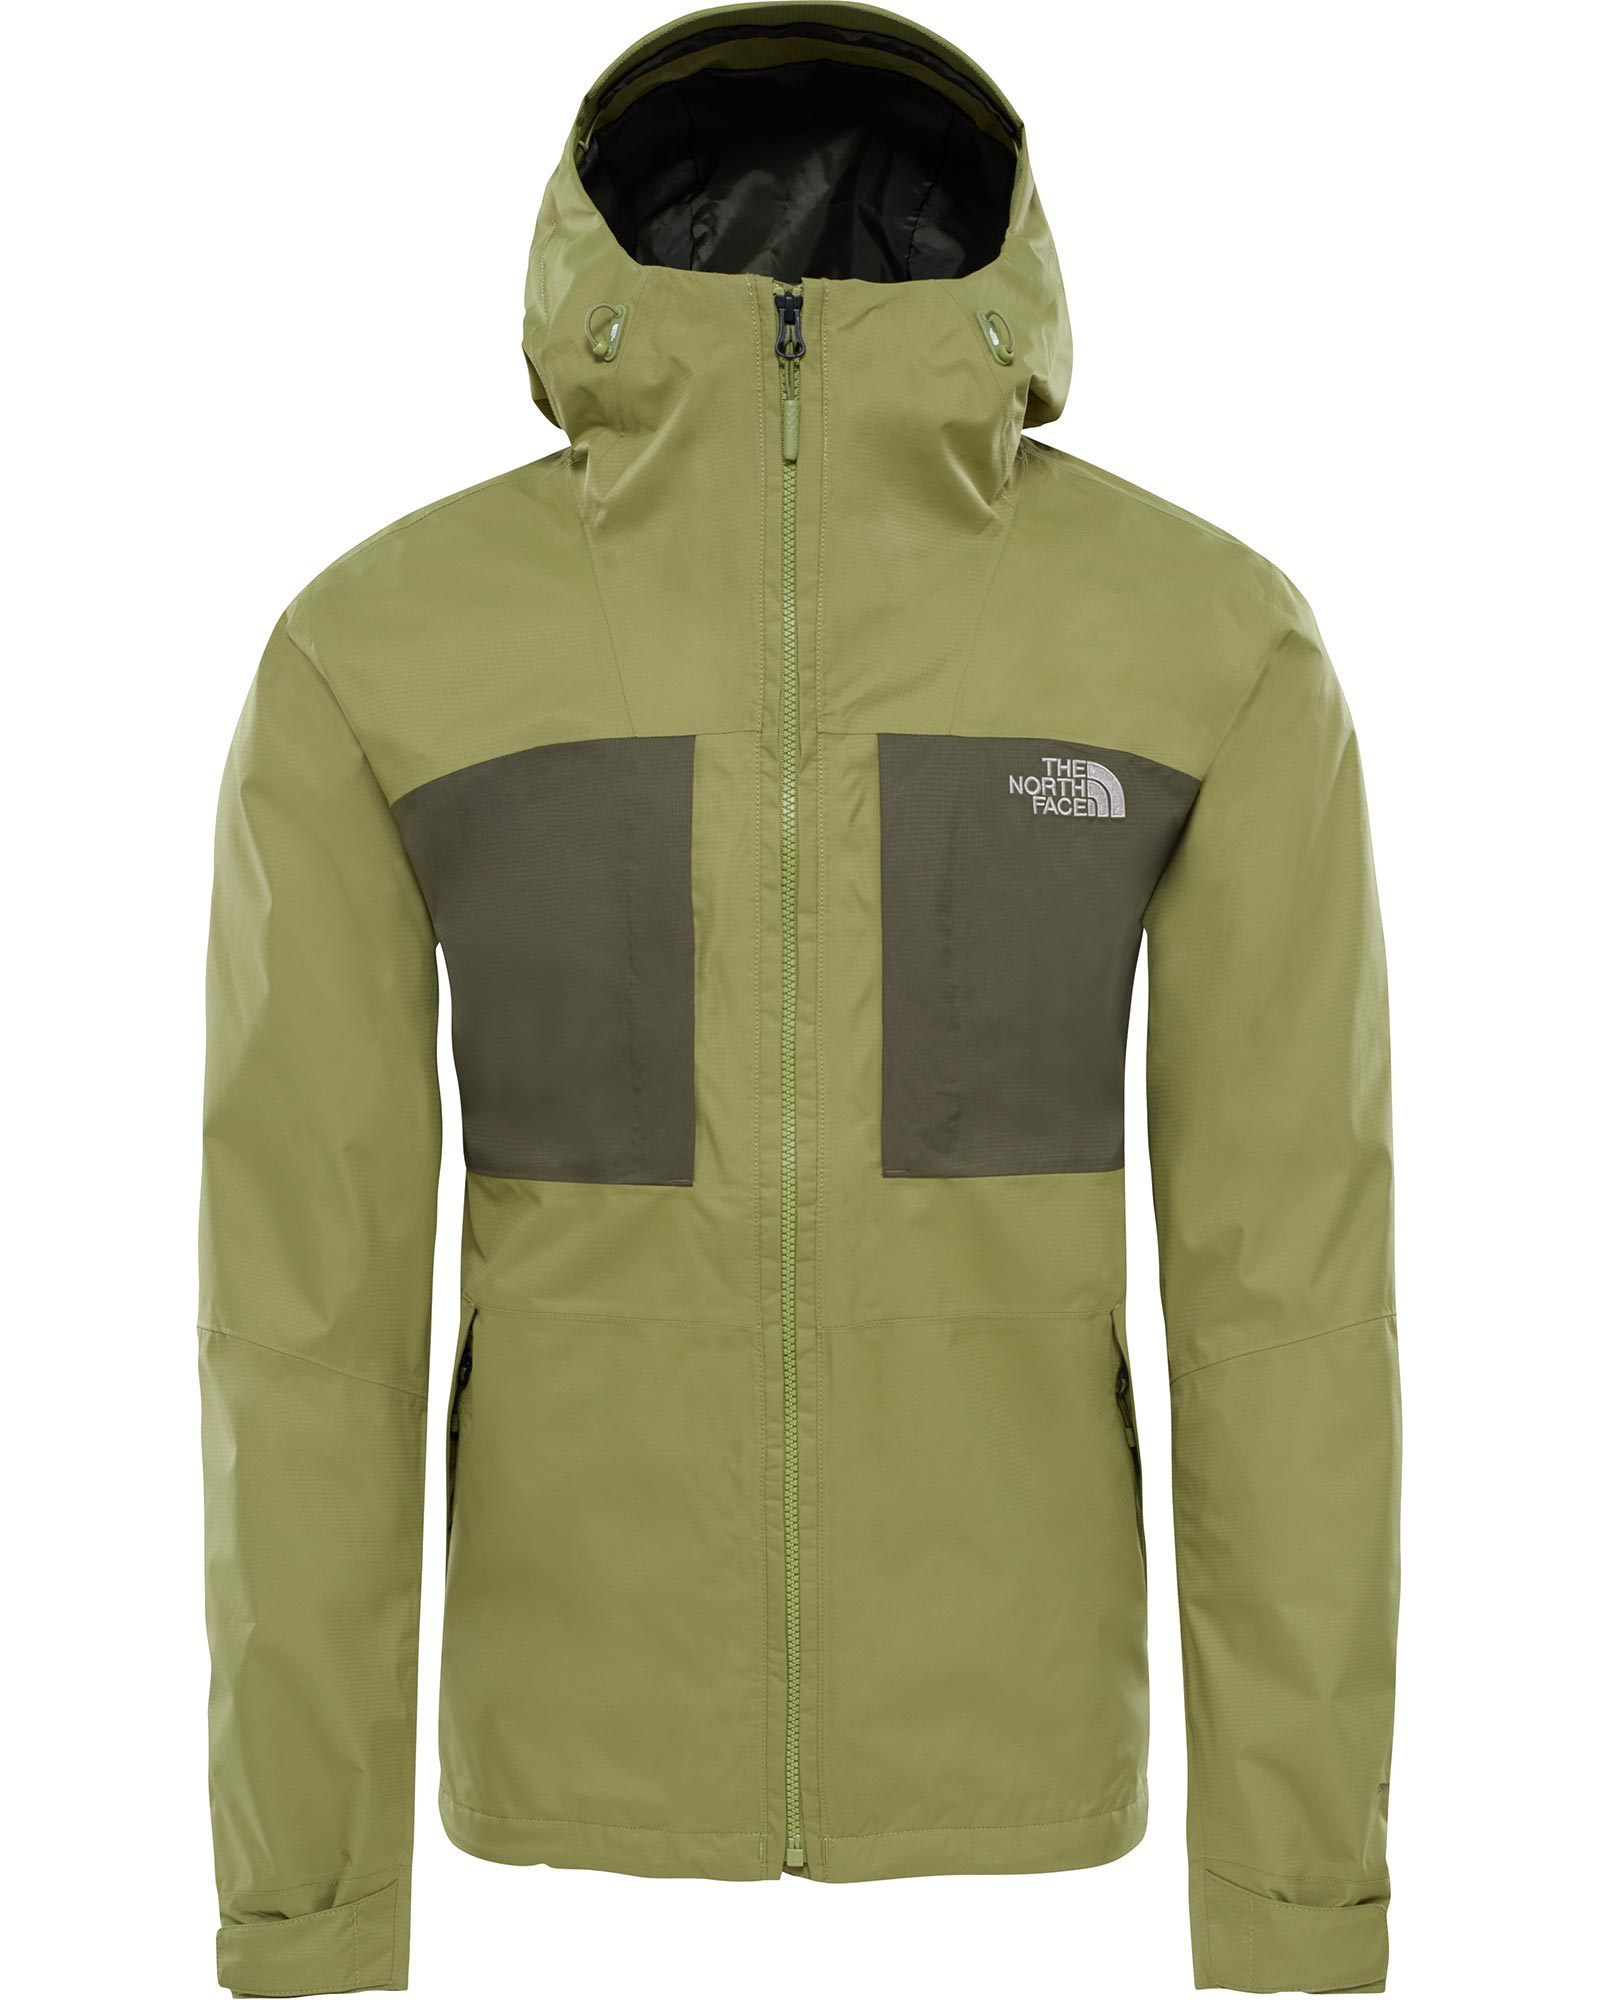 The North Face Purna 2L DryVent Men's Jacket 0